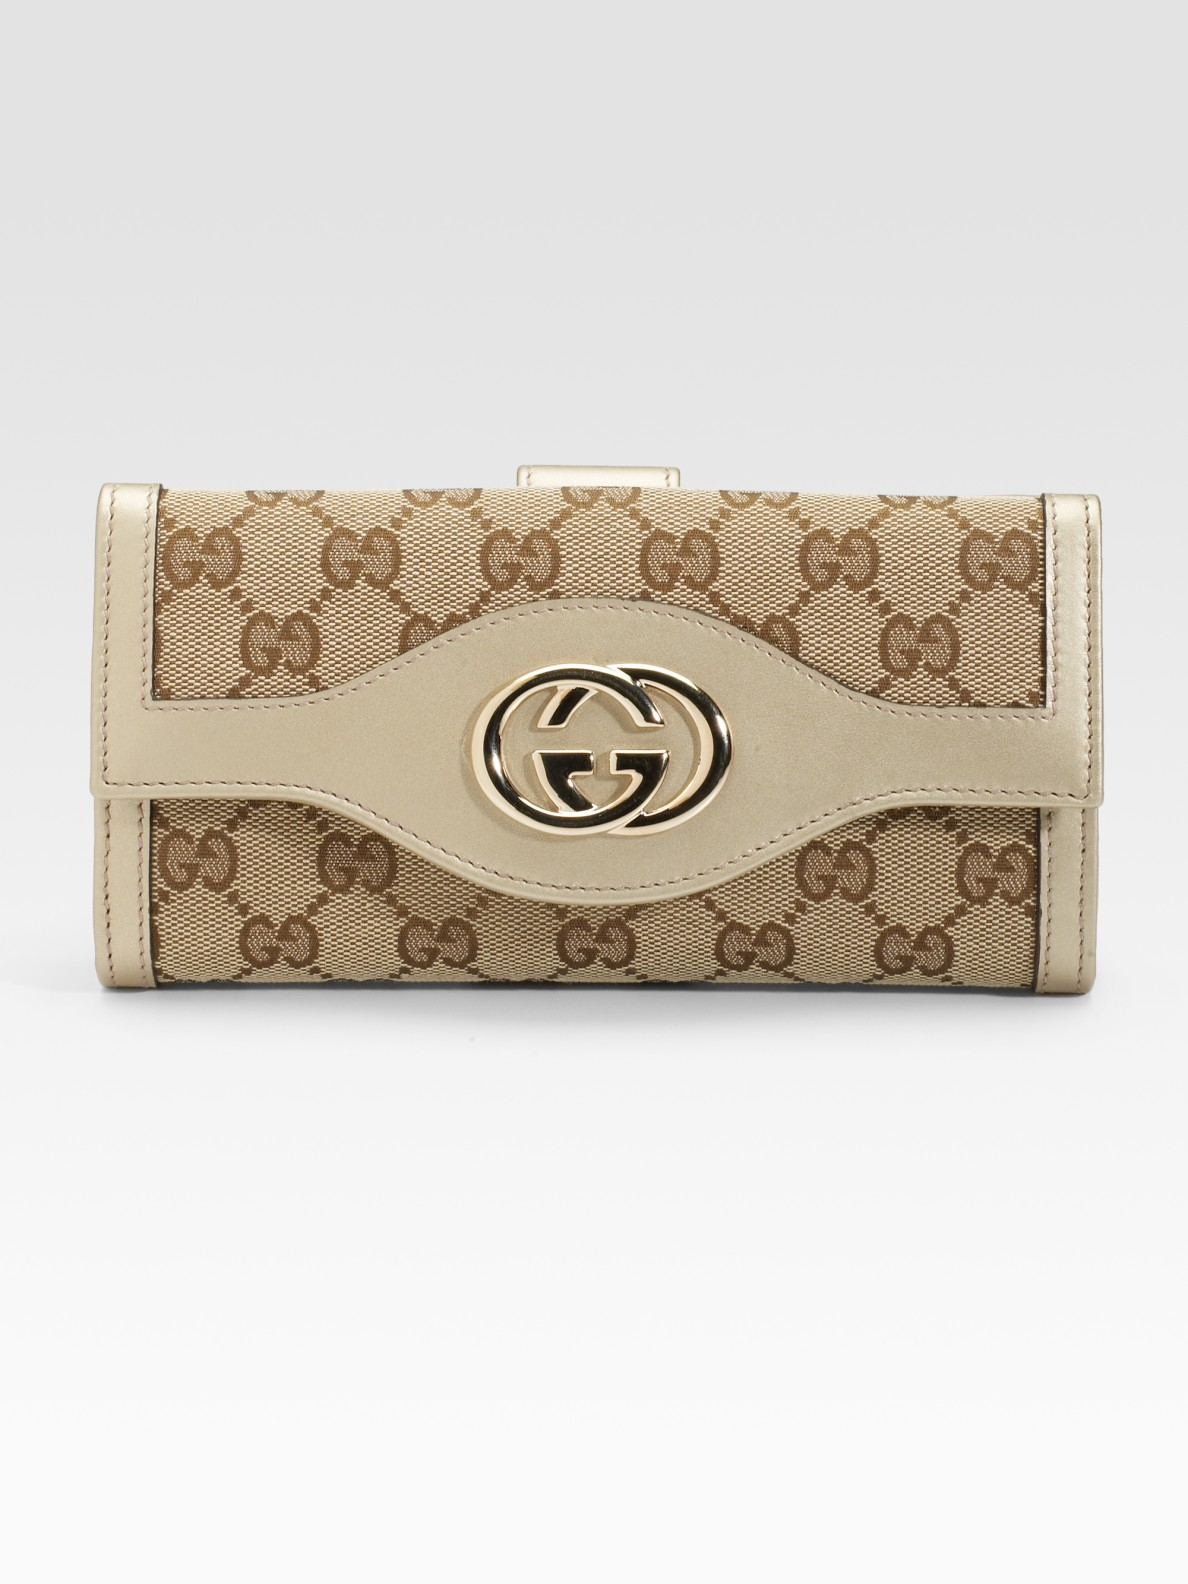 f2547e95ed95 Gucci Wrist Wallet Nordstrom | Stanford Center for Opportunity ...